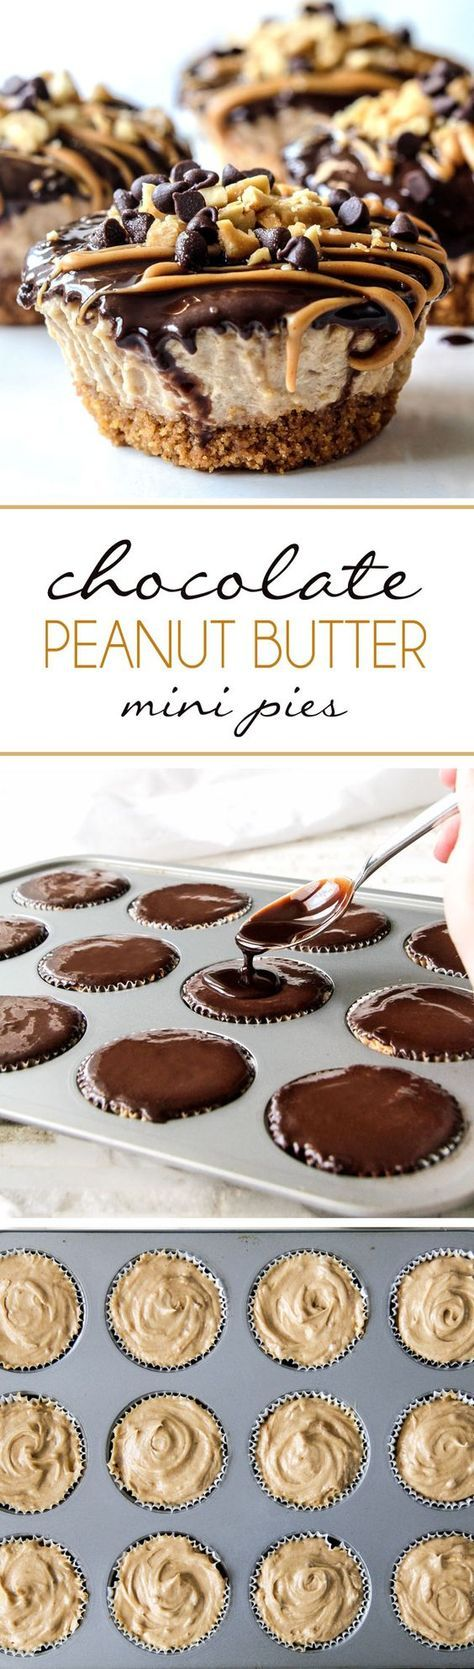 Mini Chocolate Peanut Butter Pies are easy, make ahead, almost NO BAKE and, decadently DELICIOUS with toffee graham cracker crust, creamy peanut butter filling, and silky chocolate ganache